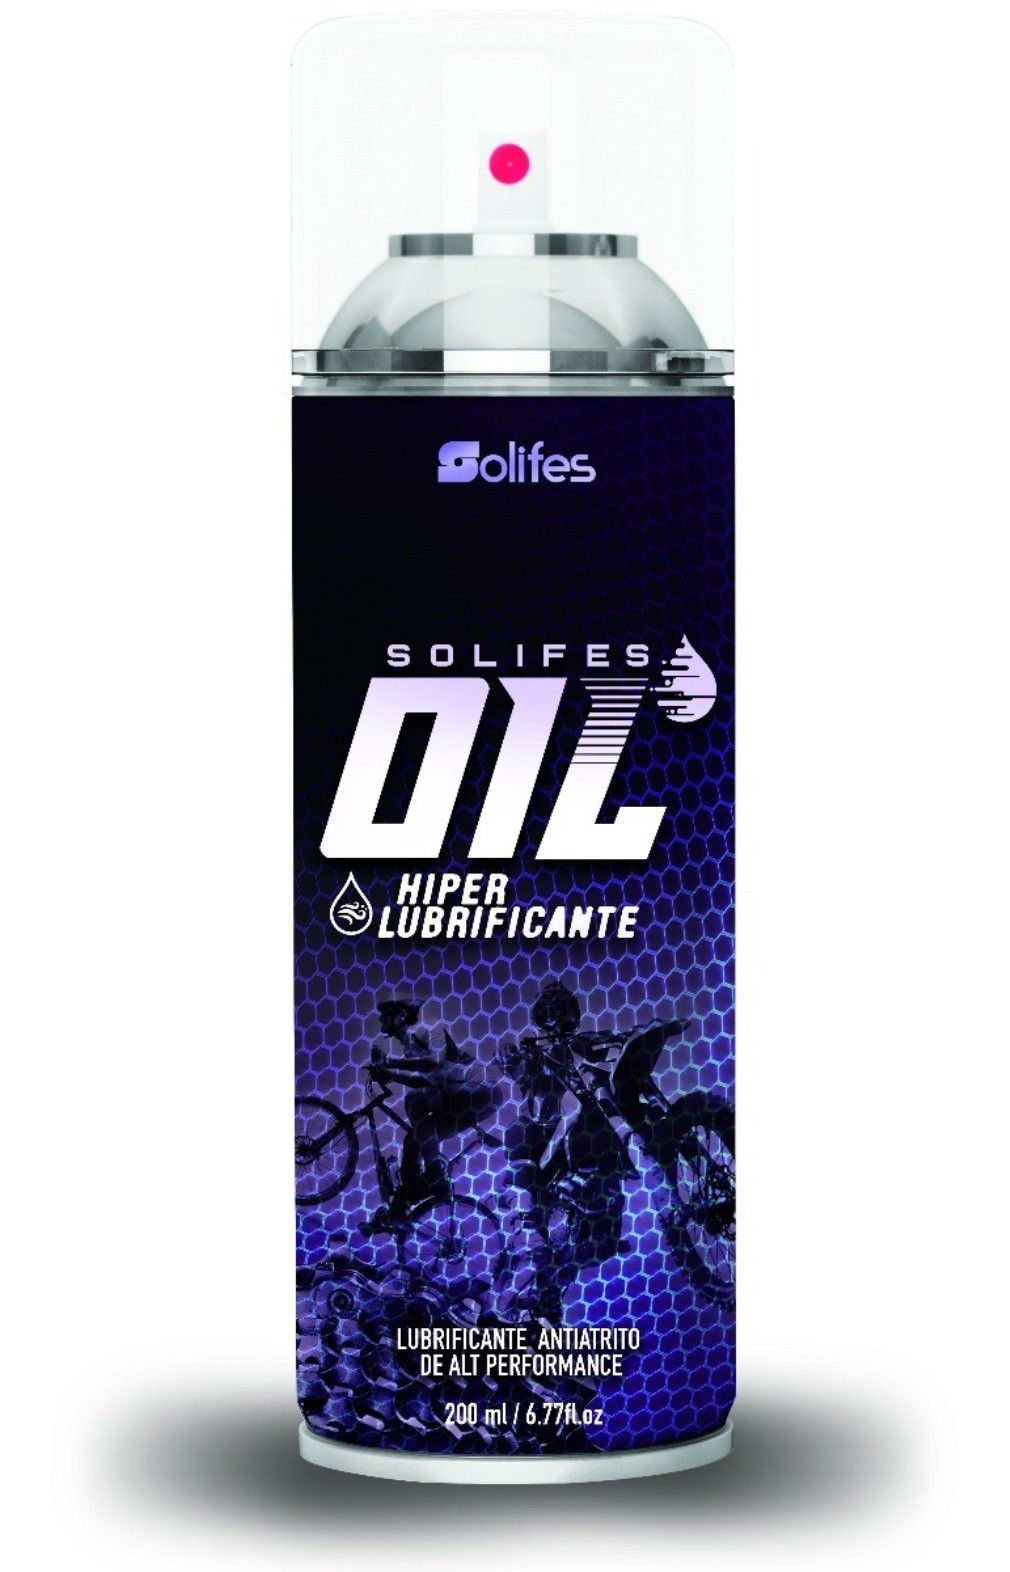 Hiper Lubrificante Solifes Oil Spray 200ml